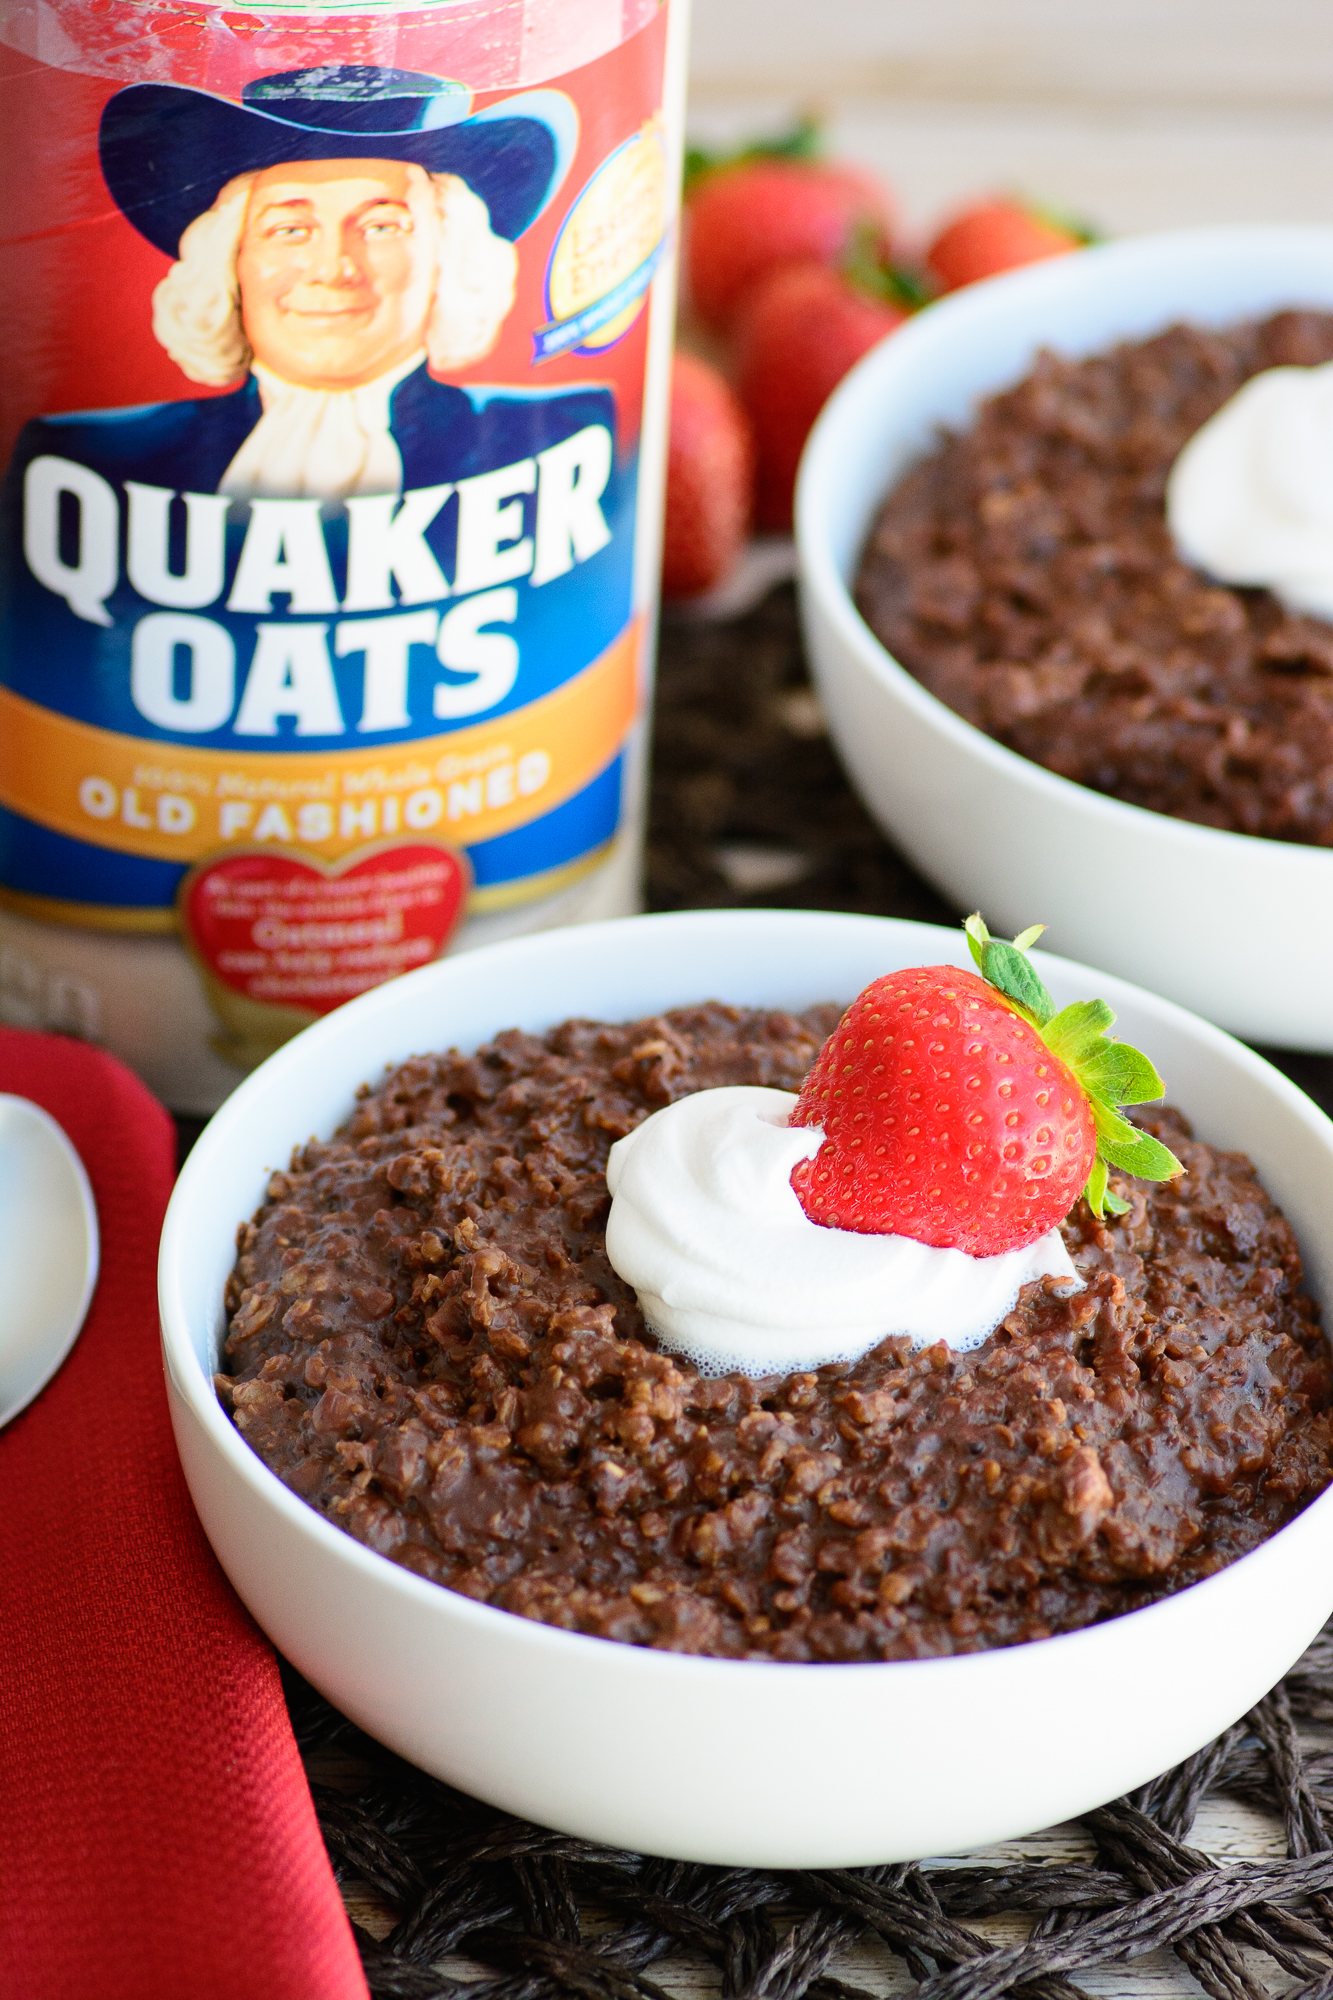 Sometimes you just want to eat dessert for breakfast. Get your wish with this protein-packed and filling double chocolate oatmeal!